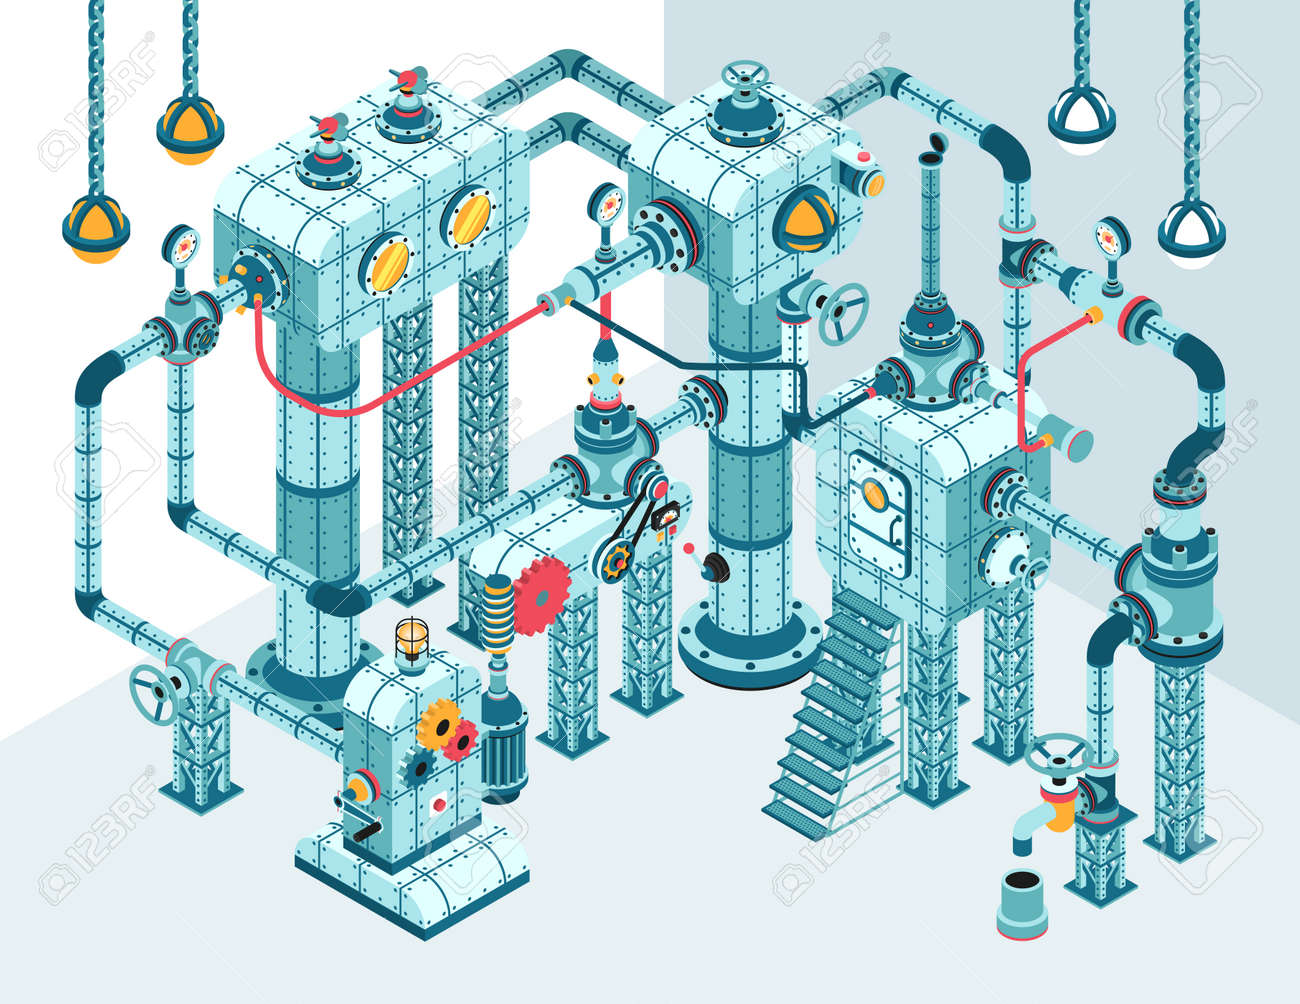 Complex 3D isometric industrial abstract intricate machine of pipes, motors, levers, gauges, pumps and so on.  It can be disassembled into individual parts. Stock Vector - 92415597